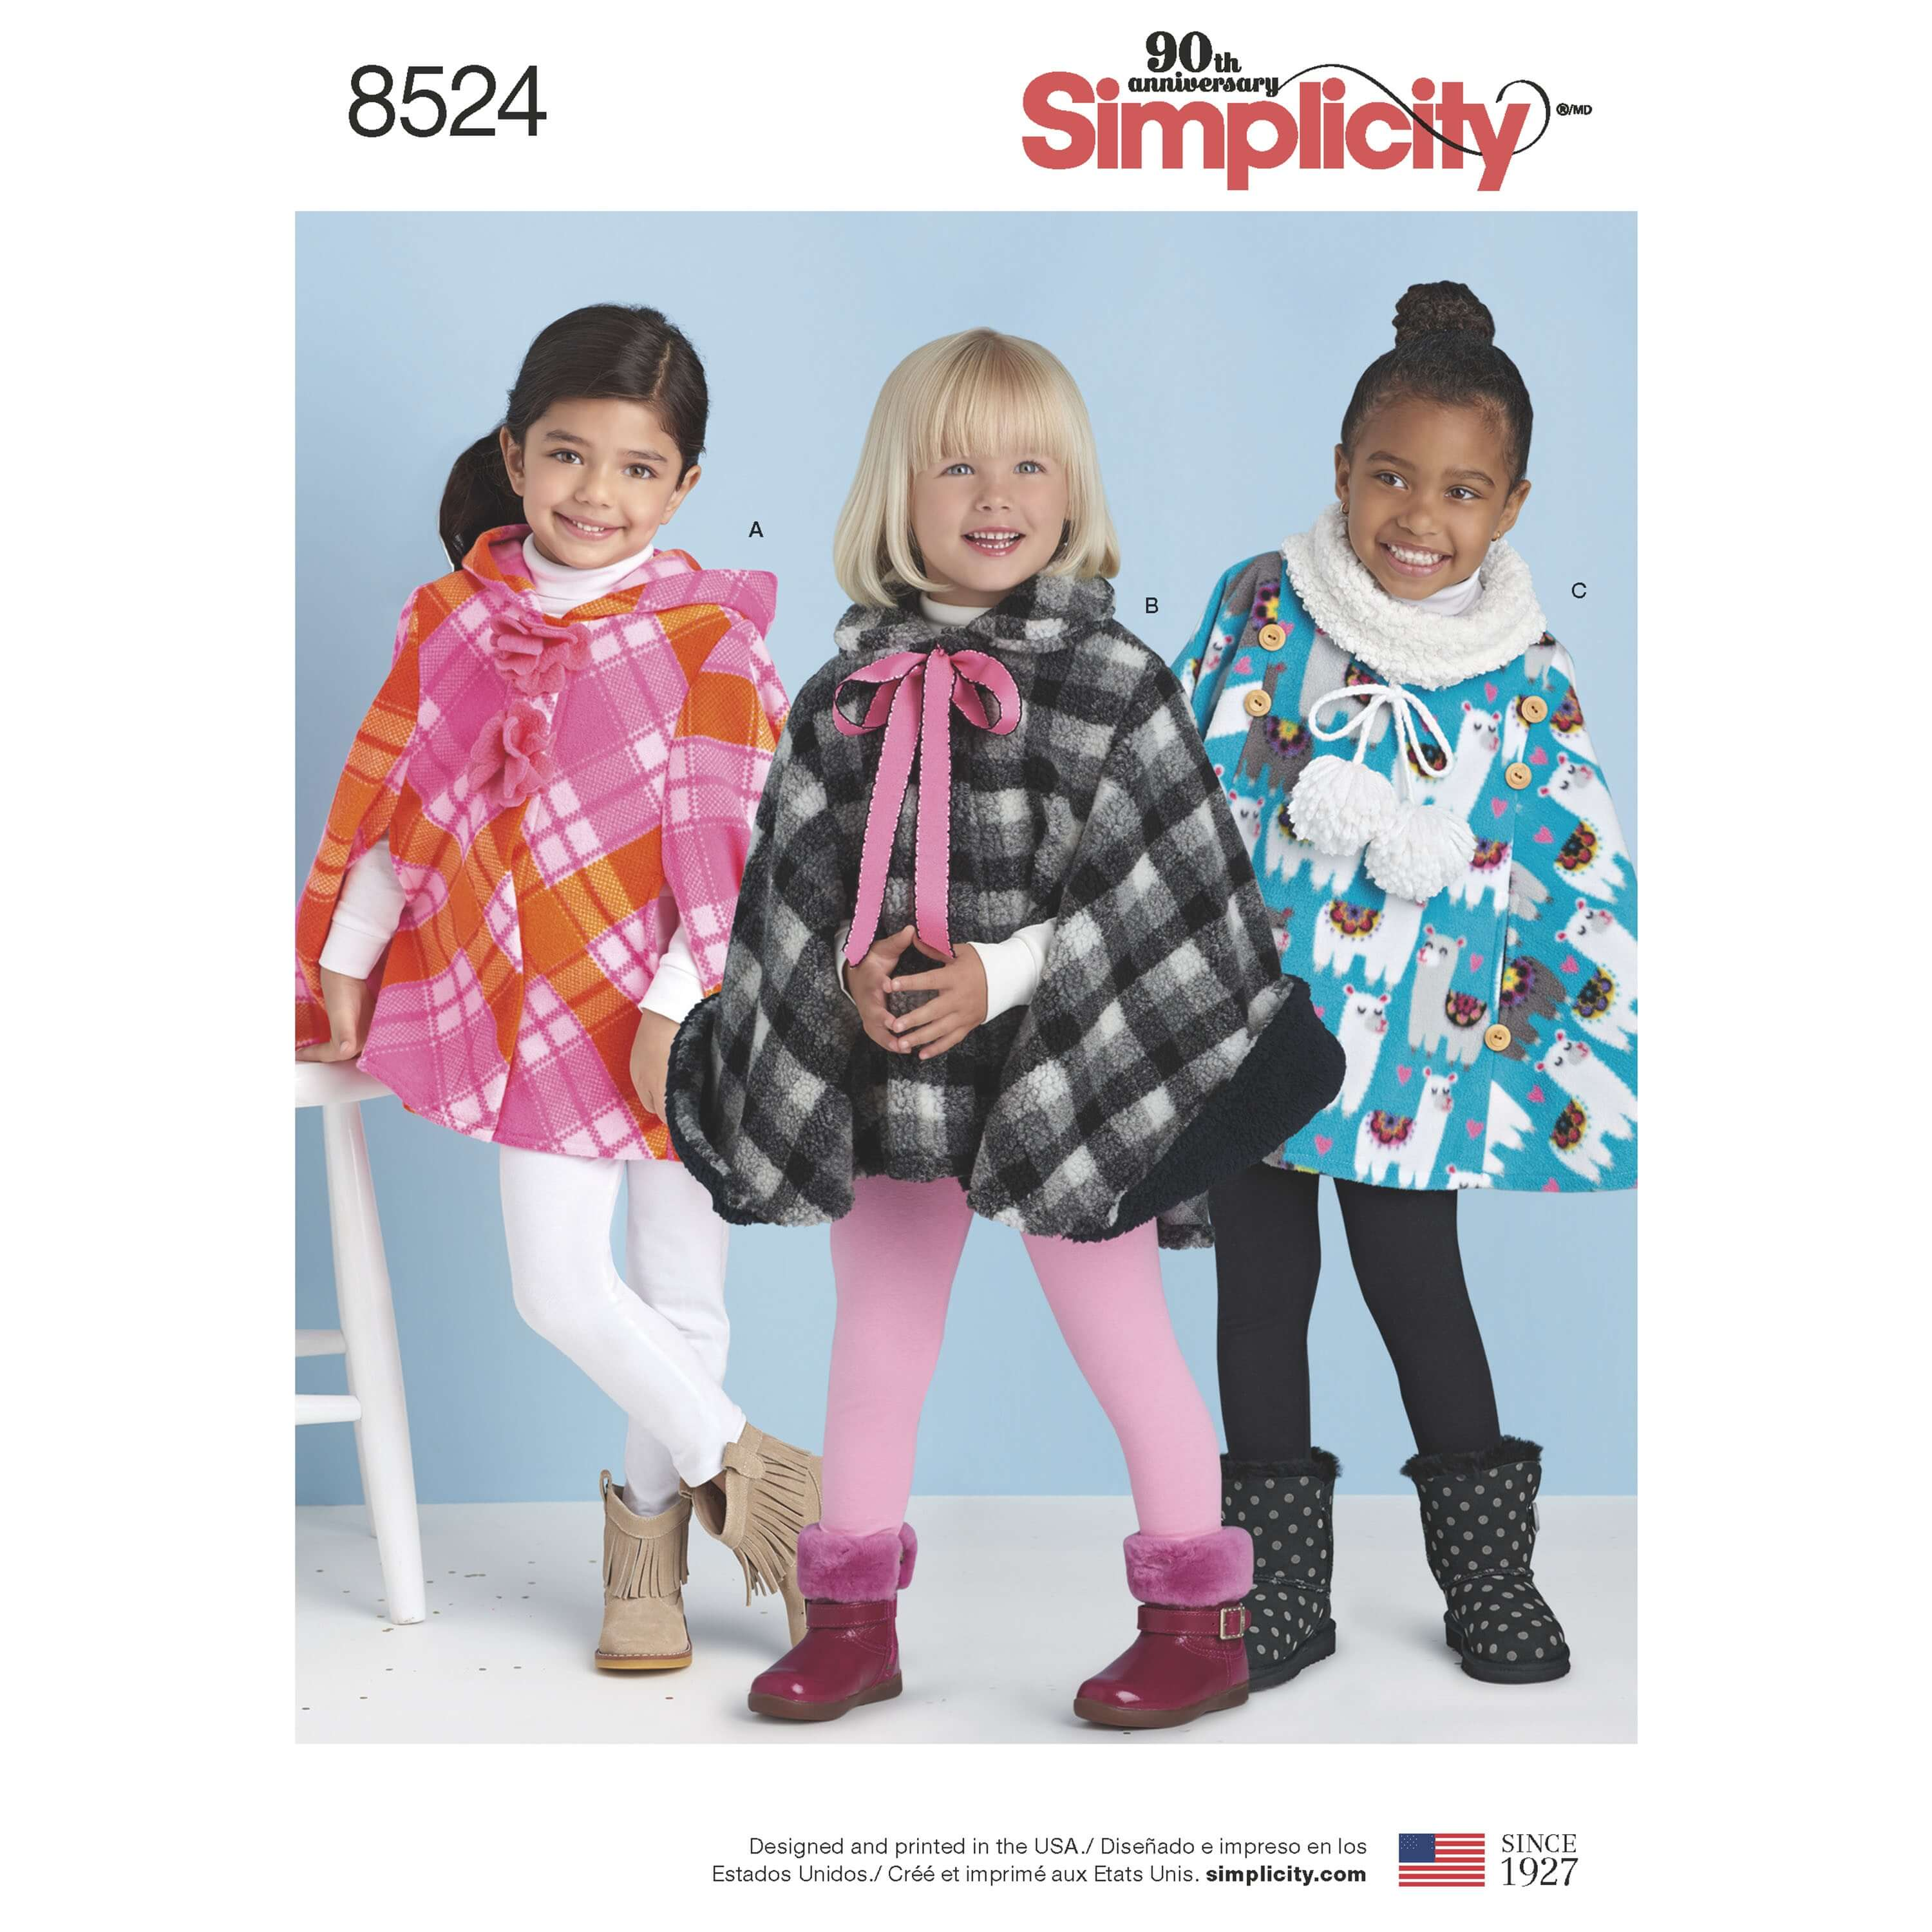 Simplicity Sewing Pattern 8524 Child's Ponchos with Decoration Options